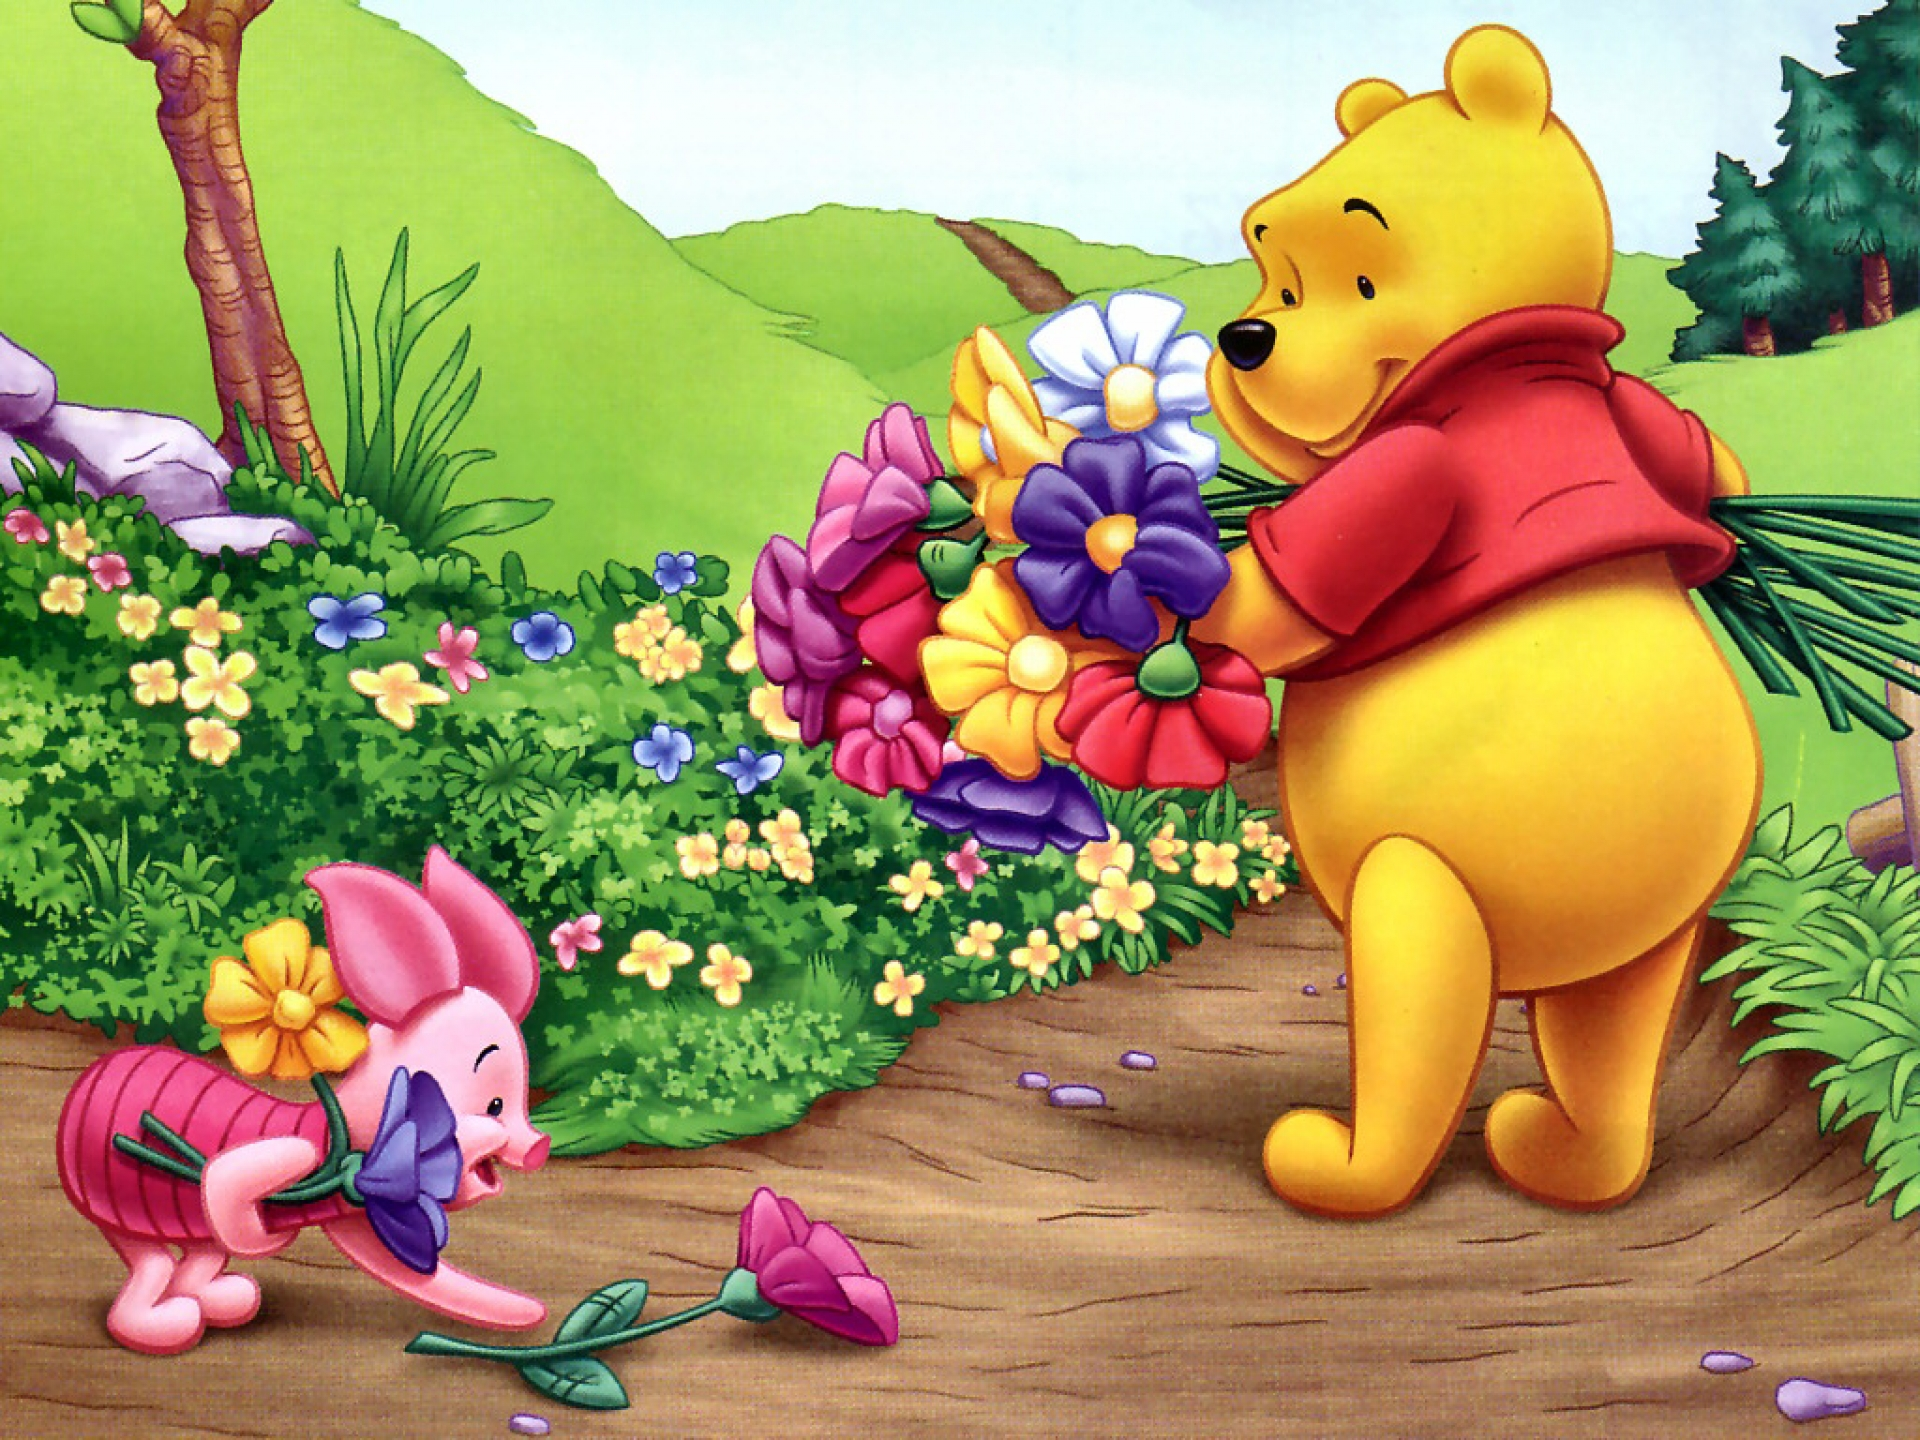 It's just a photo of Bright Pics of Winny the Pooh